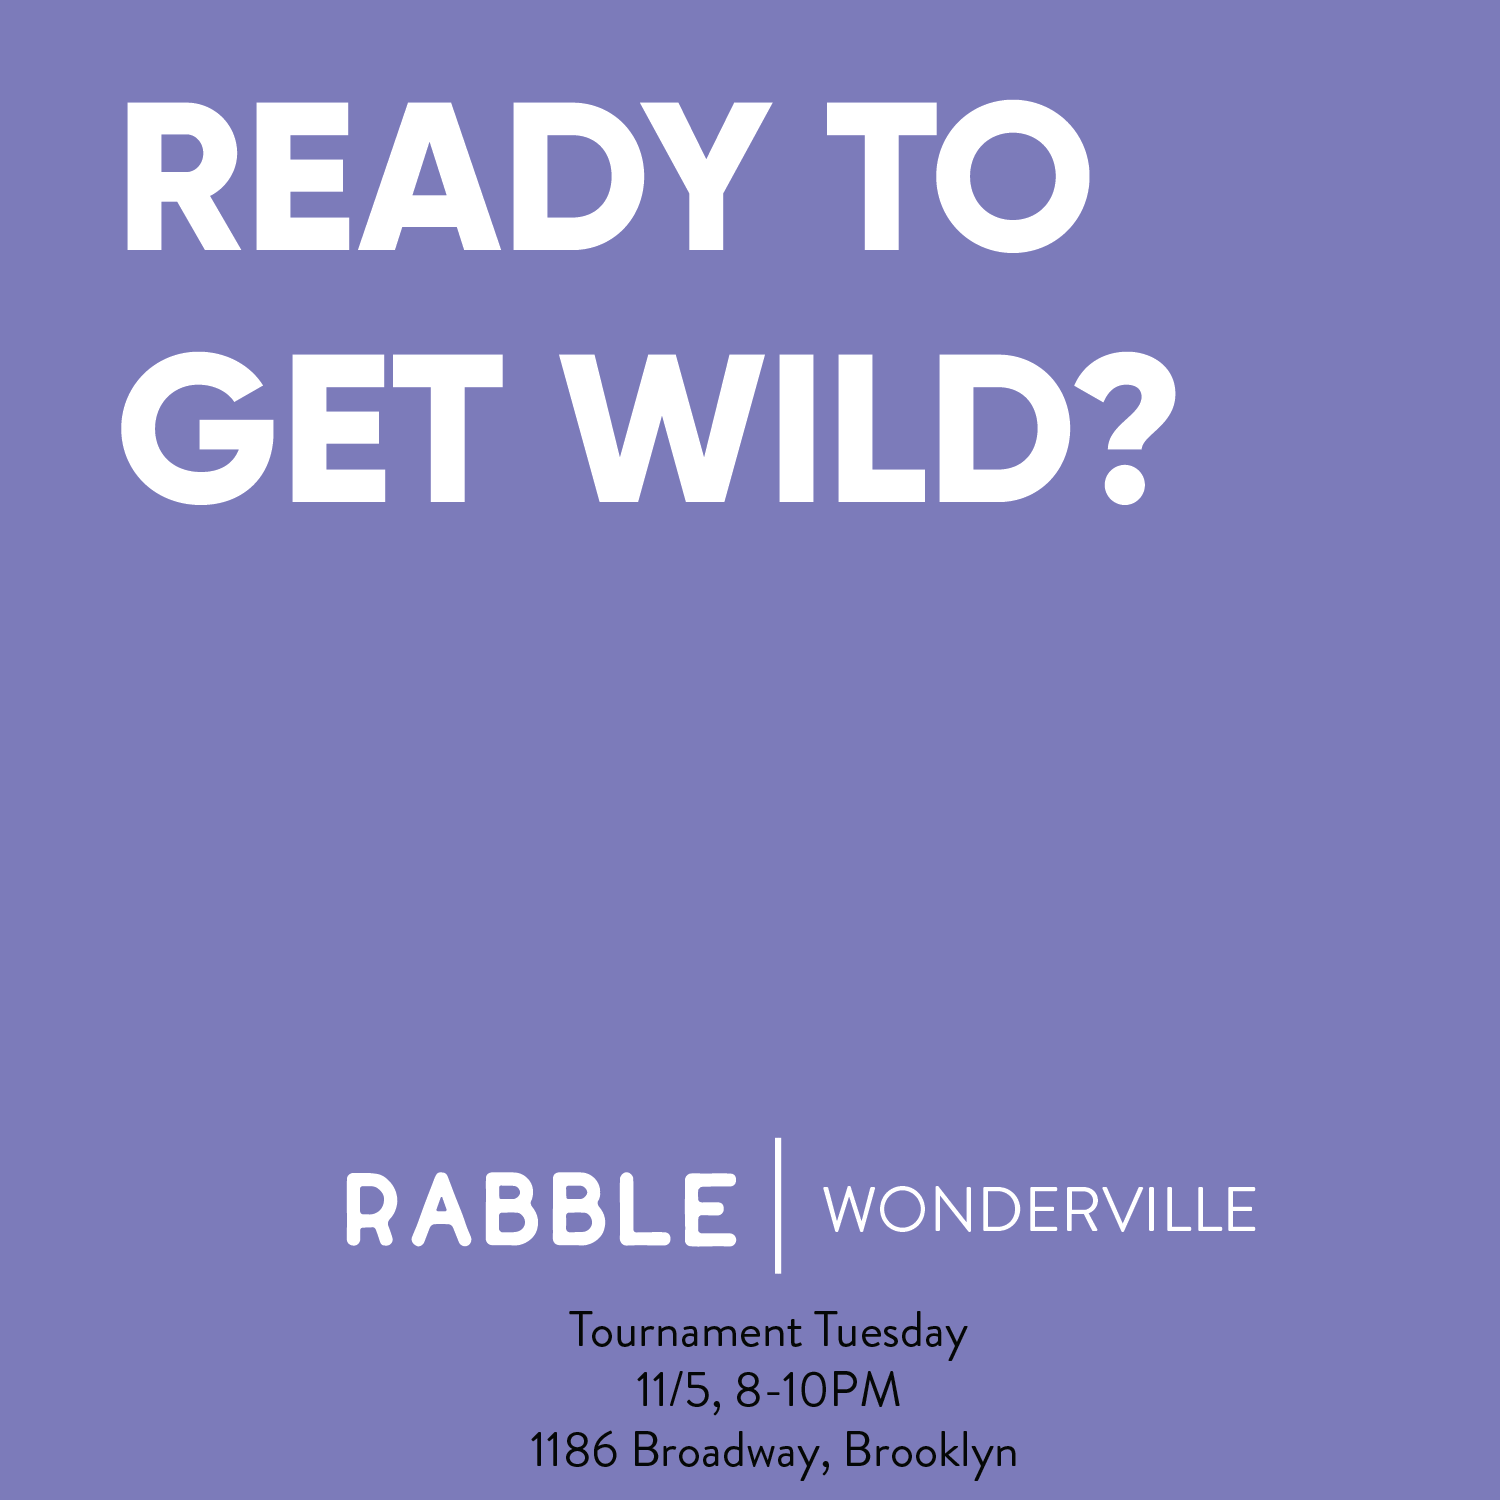 RSVP:  https://withfriends.co/event/2852860/tournament_tuesday_rabble